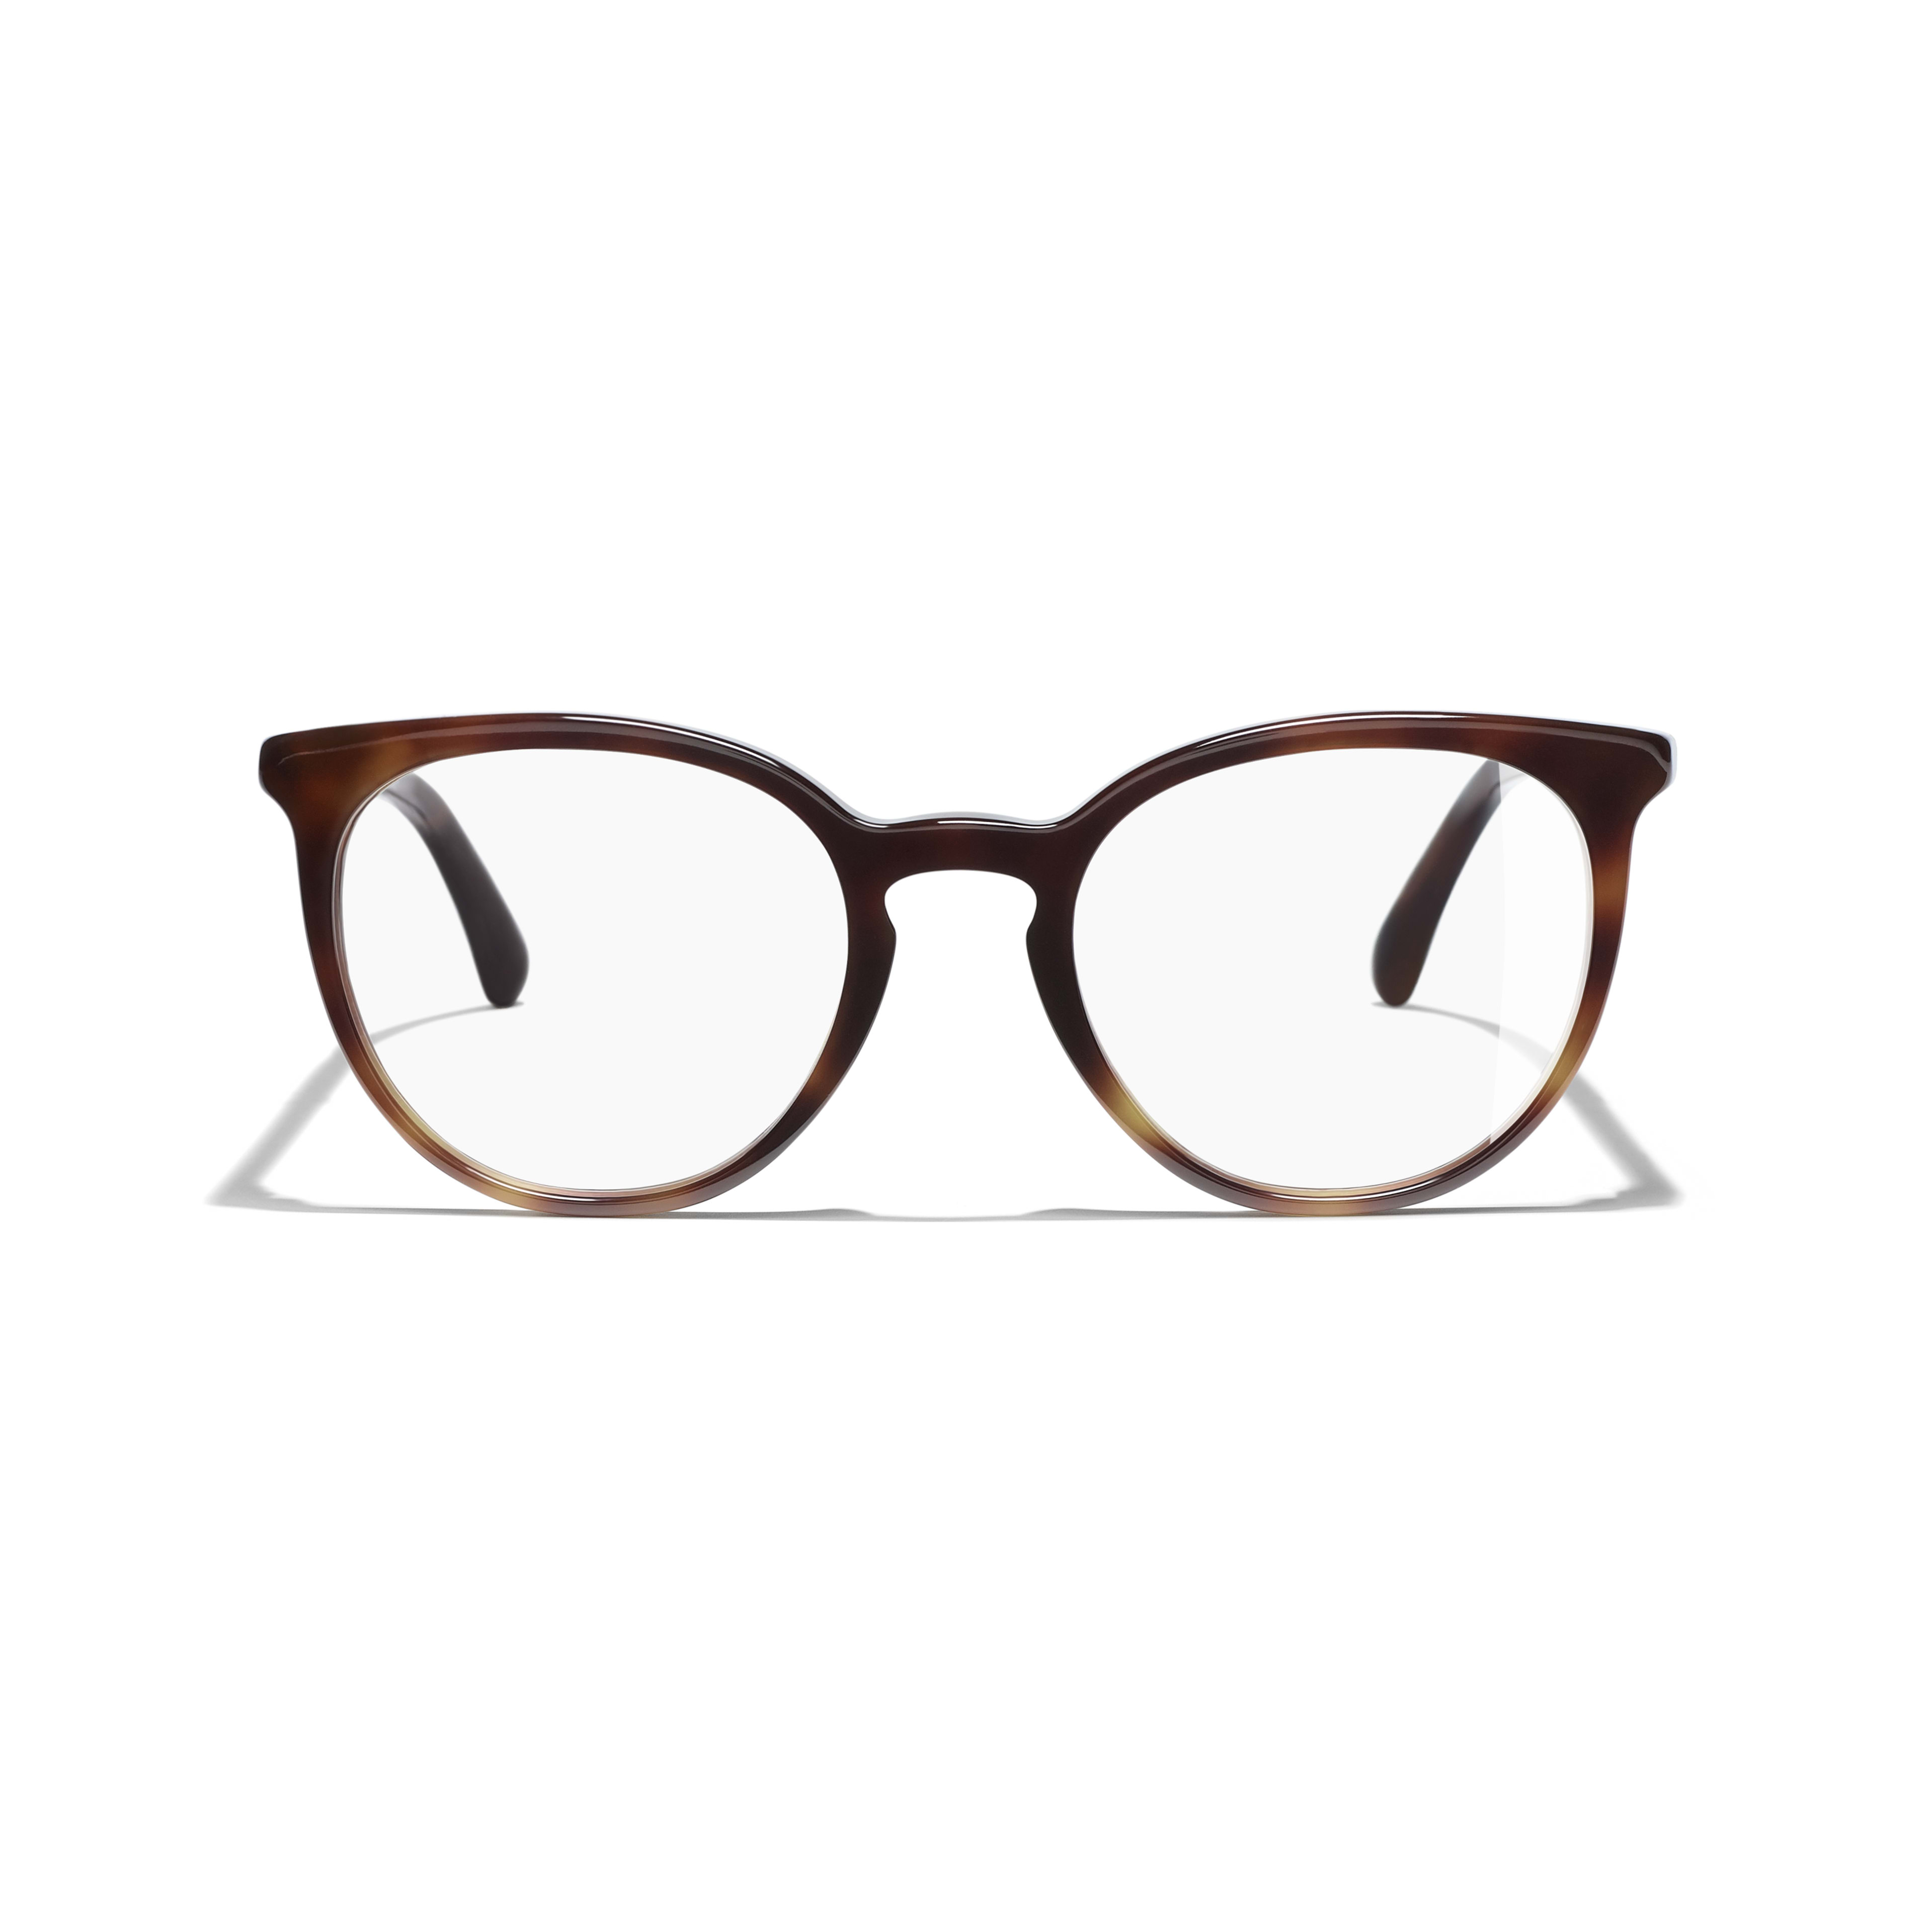 Pantos Eyeglasses - Light Tortoise - Acetate & Imitation Pearls - CHANEL - Alternative view - see standard sized version